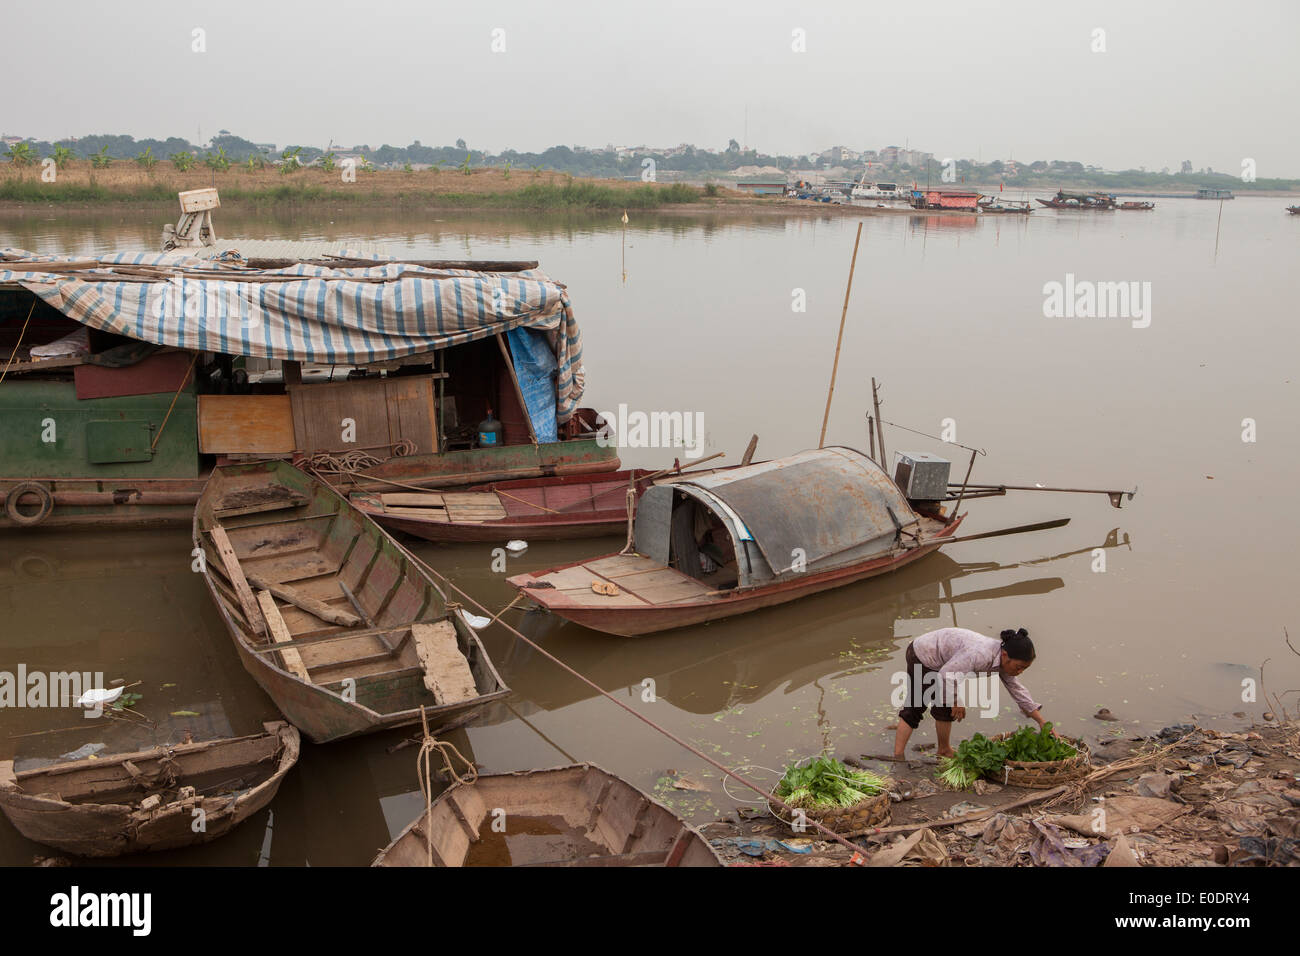 Farmers wash vegetables along the Red River in Hanoi, Vietnam. - Stock Image